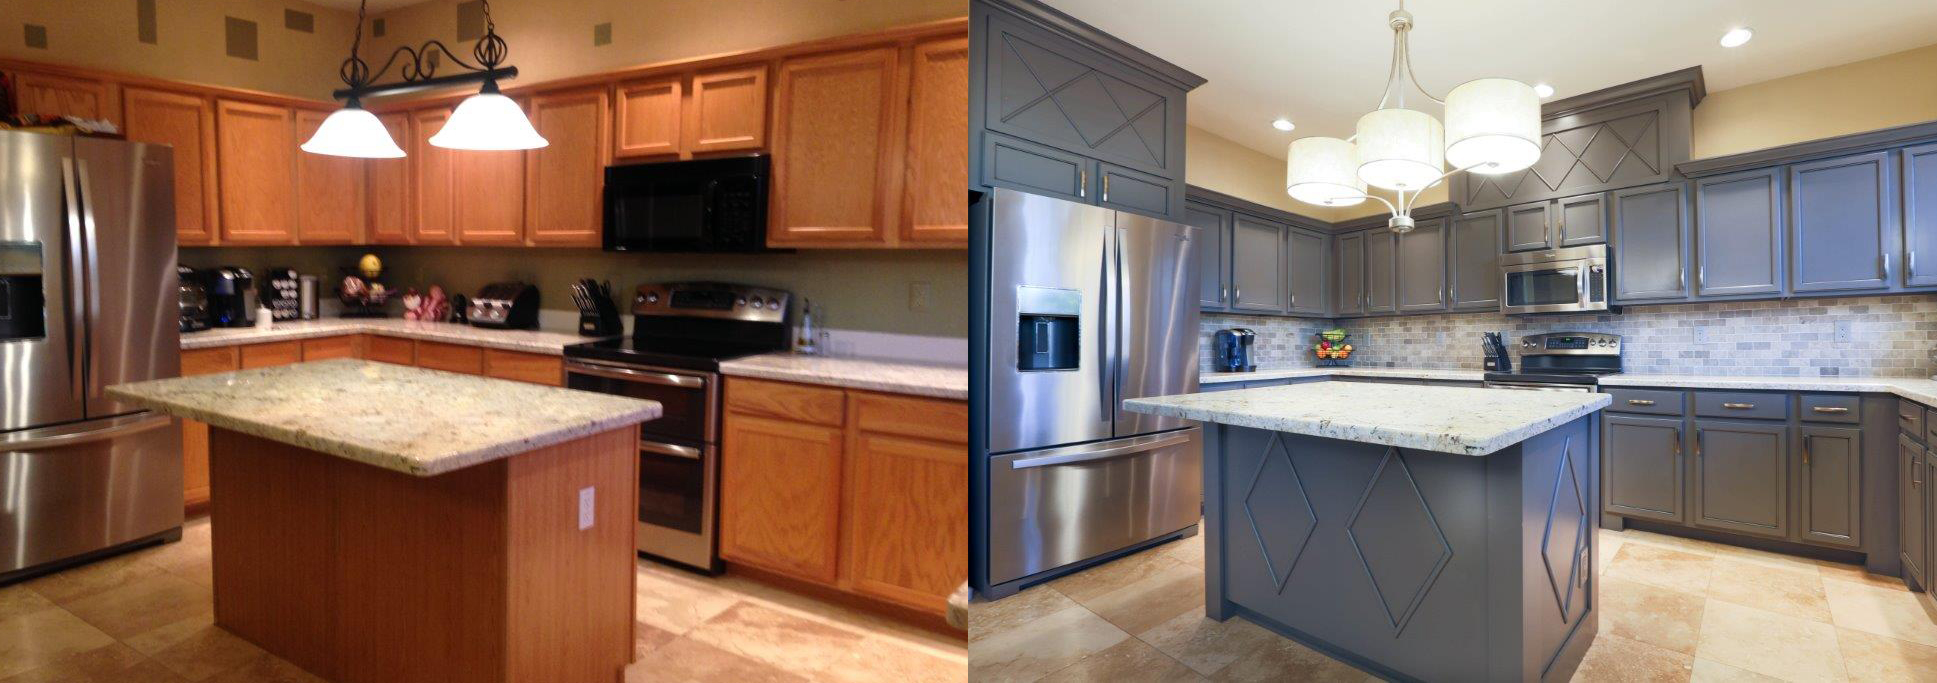 Cabinet Refinishing Phoenix AZ Tempe Arizona Kitchens Bathrooms - Kitchen cabinet refinish